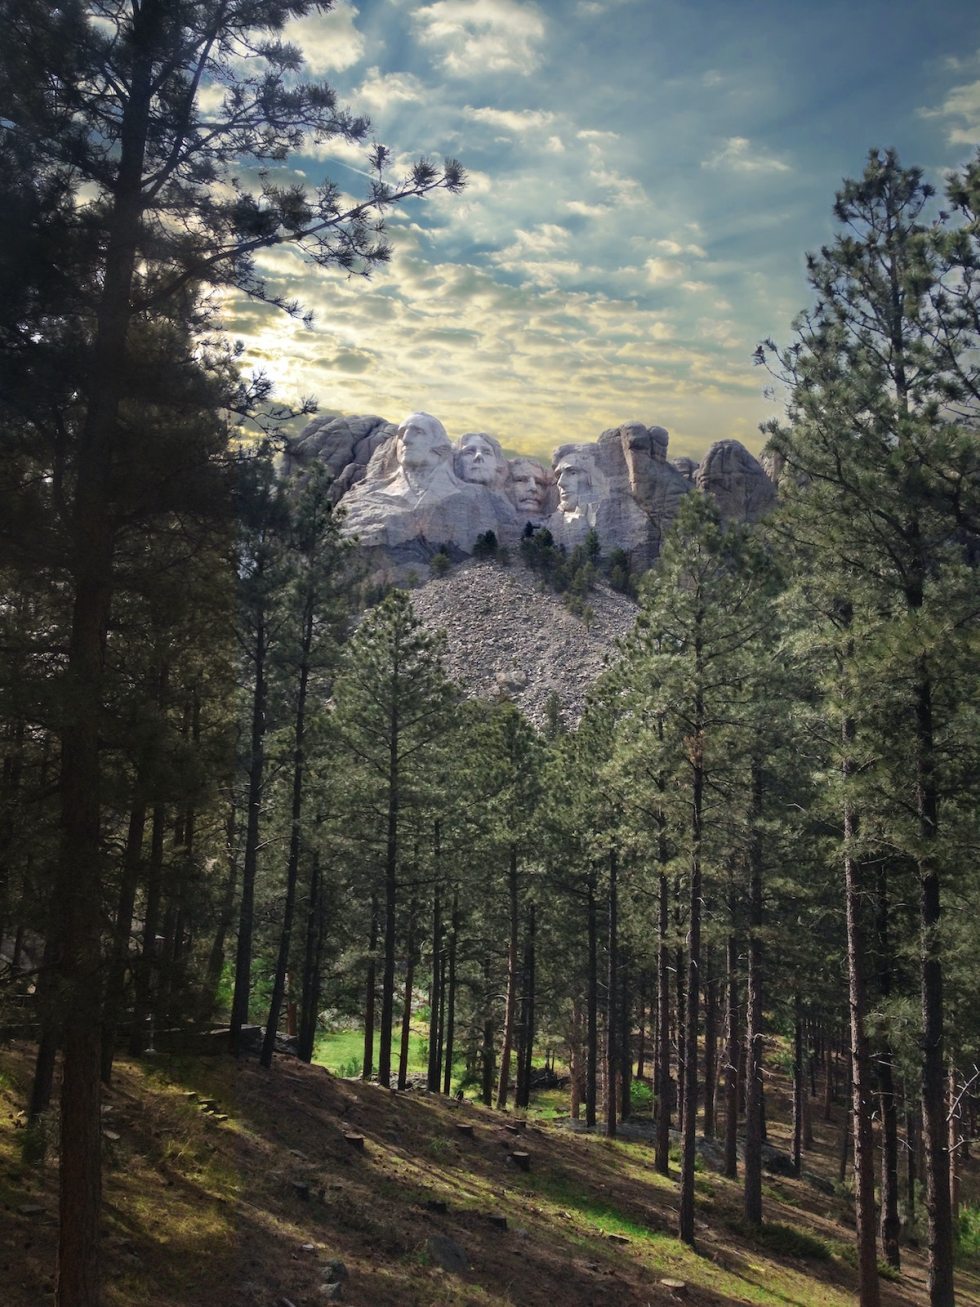 2021/01/mount-rushmore-keystone-south-dakota.jpg?fit=1200,1600&ssl=1